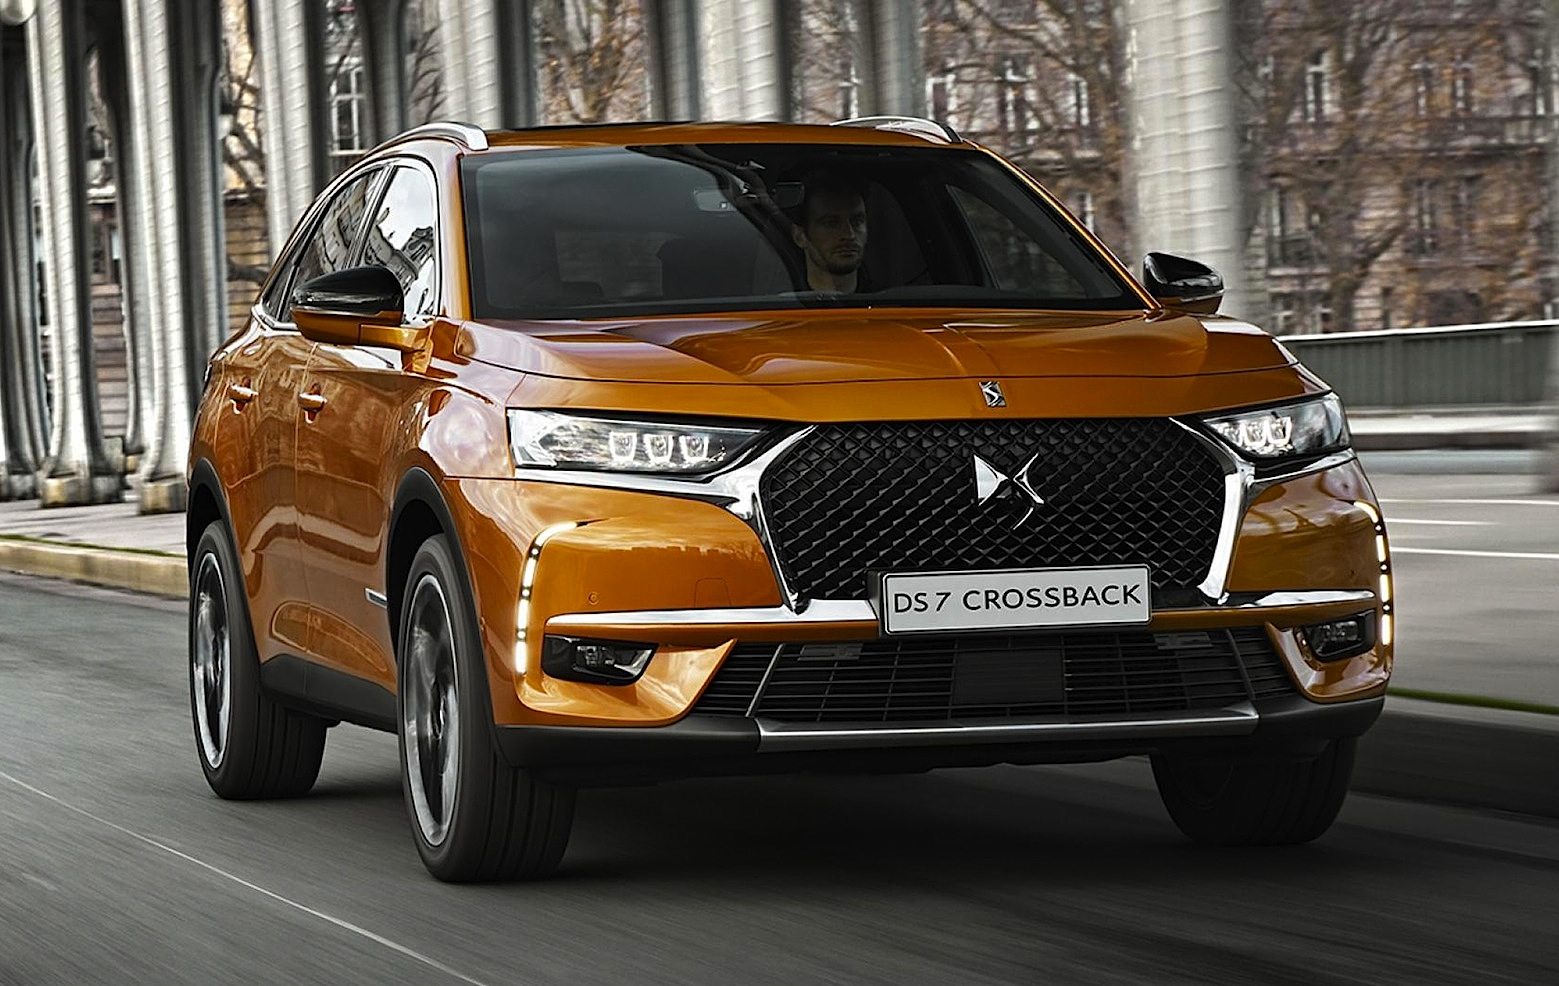 ds7 crossback il primo suv grande firmato ds motorage new generation. Black Bedroom Furniture Sets. Home Design Ideas